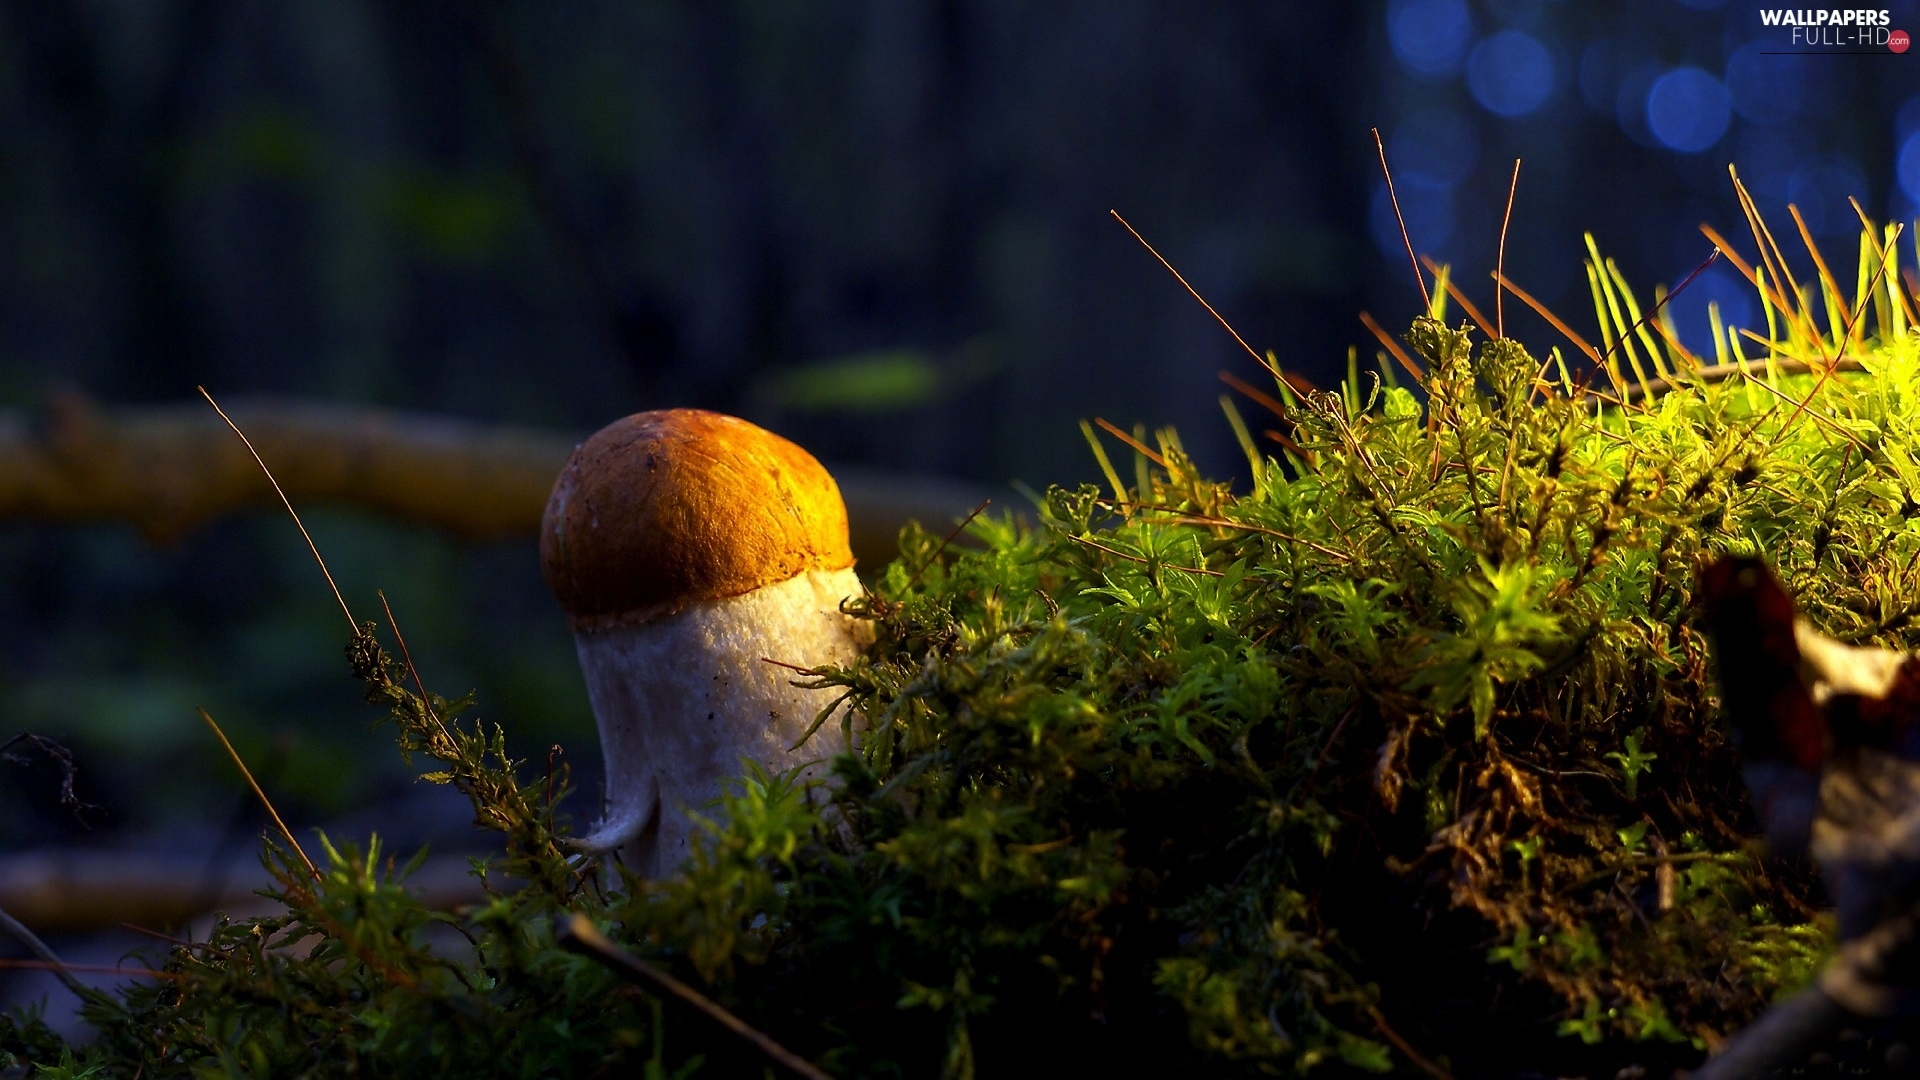 Moss, Mushrooms